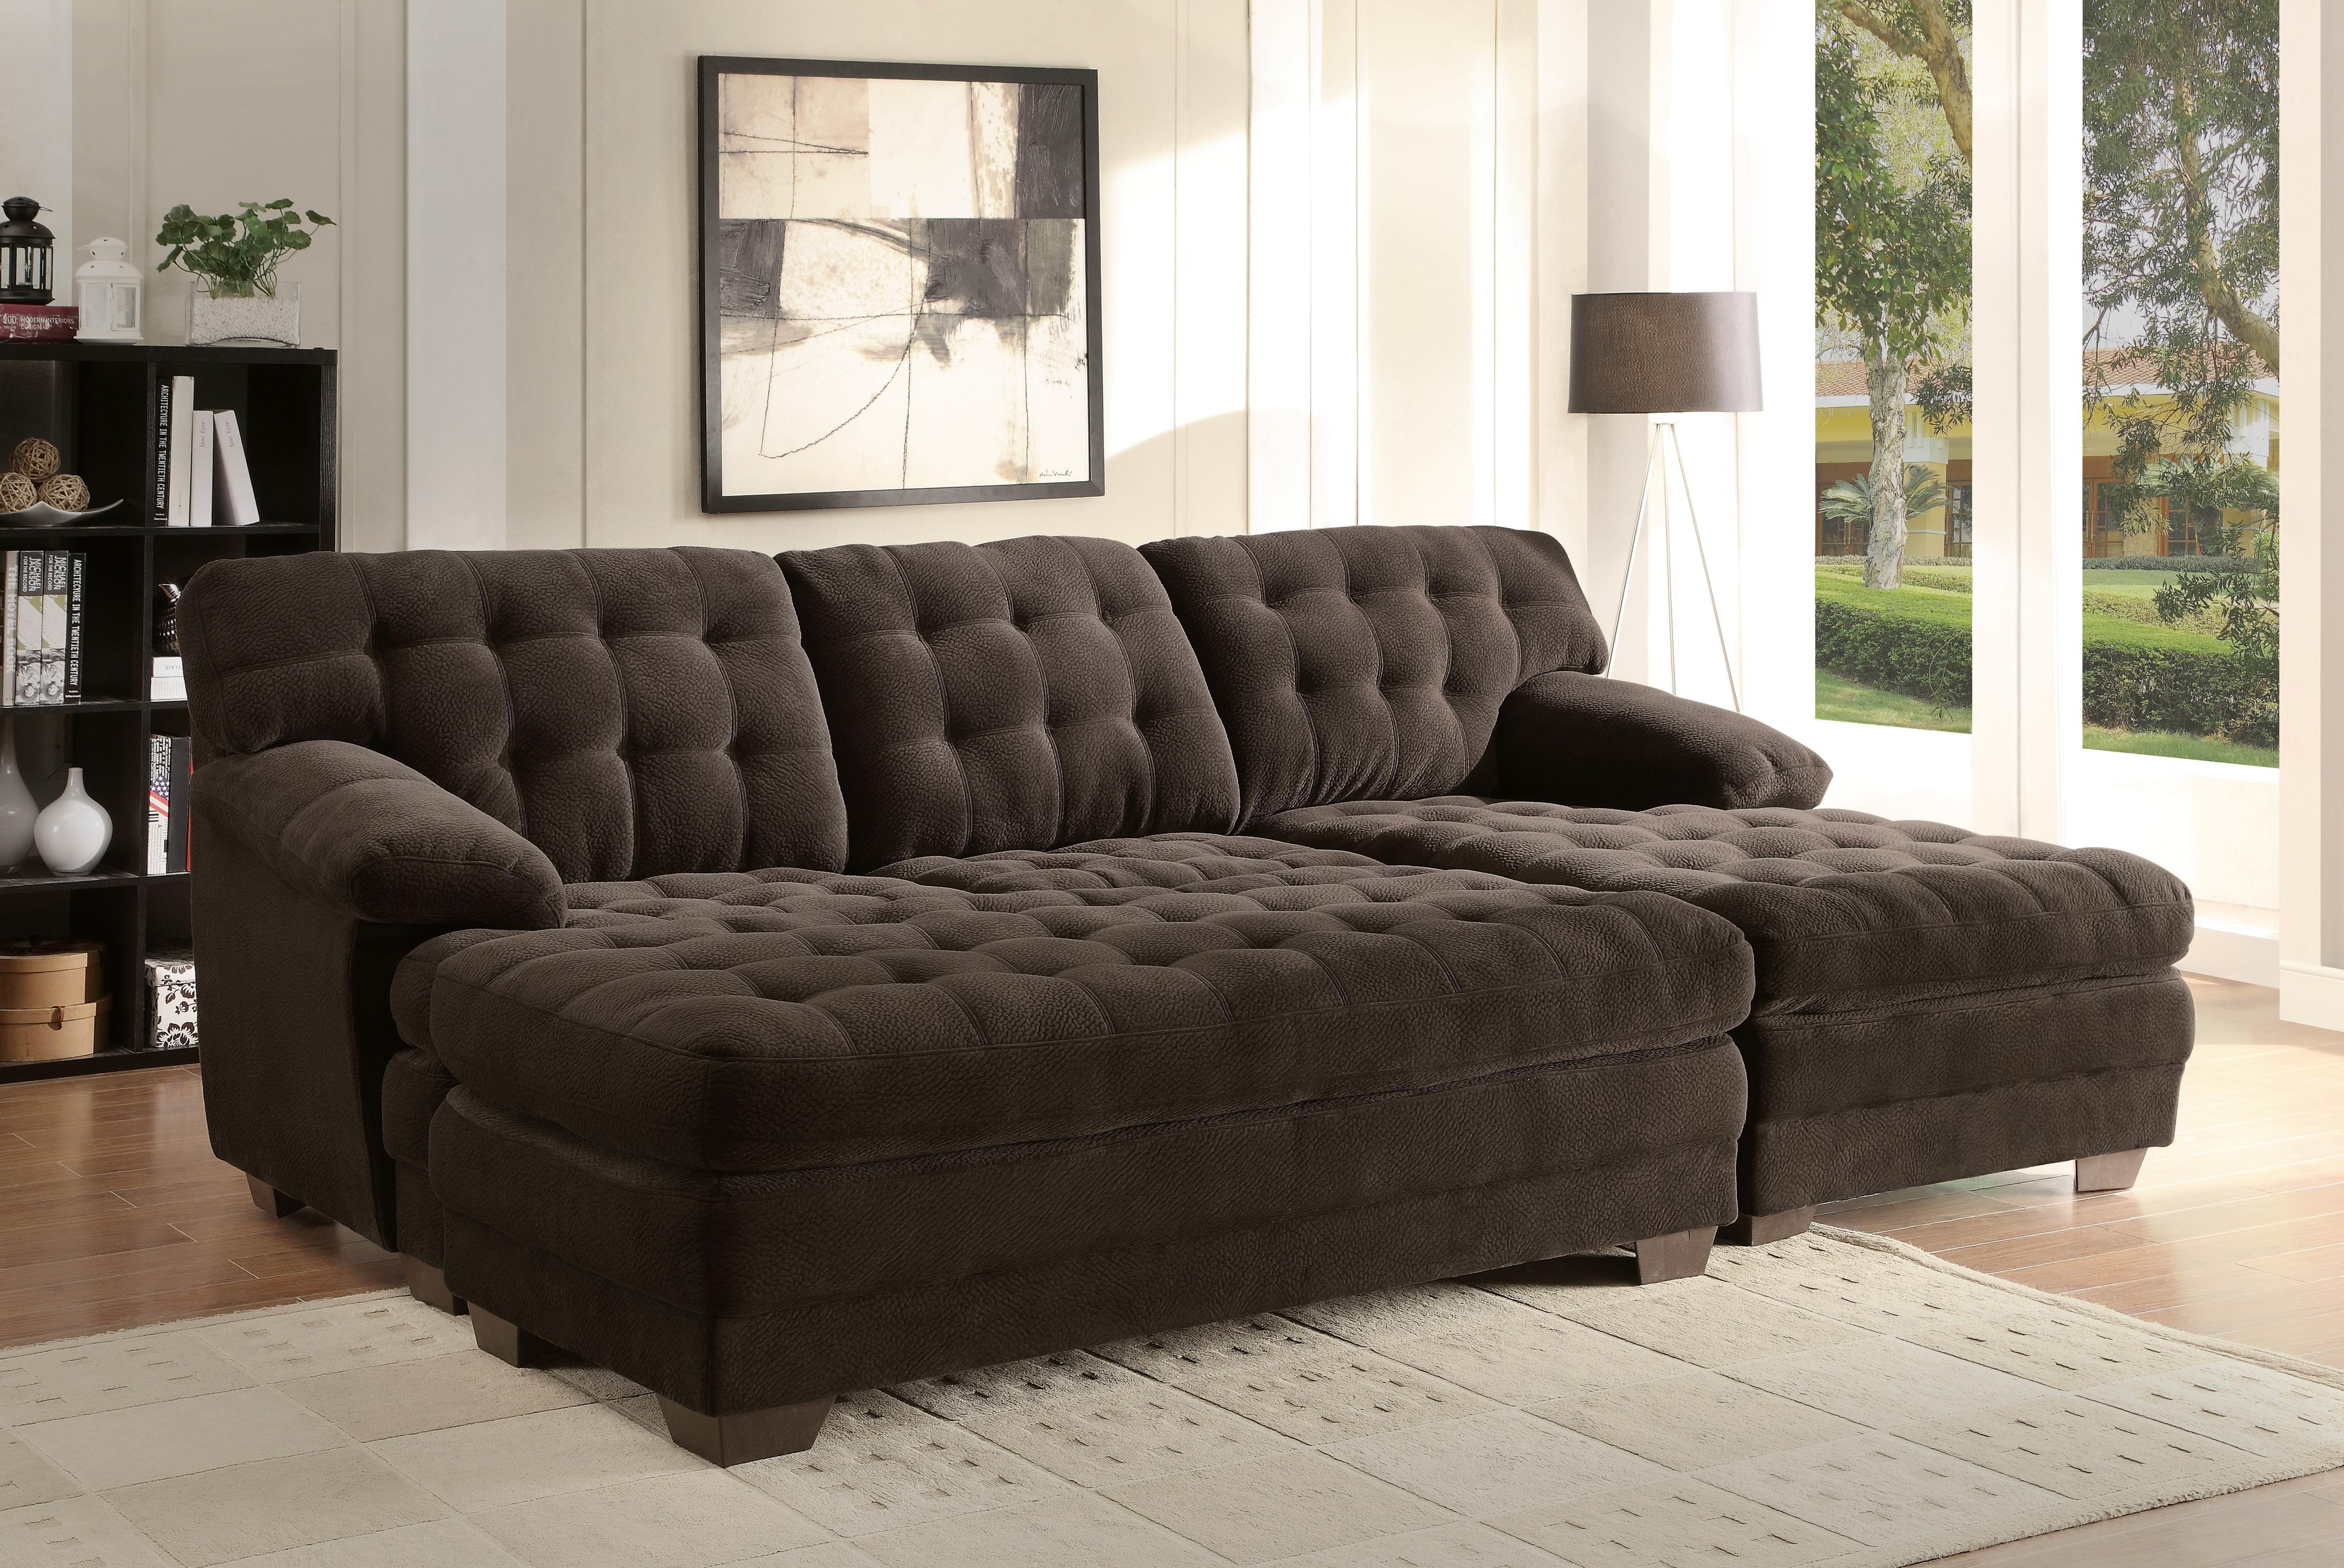 Extra Wide Sofa Bed Best Home Furniture Ideas Regarding Extra Wide Sectional Sofas (View 4 of 15)